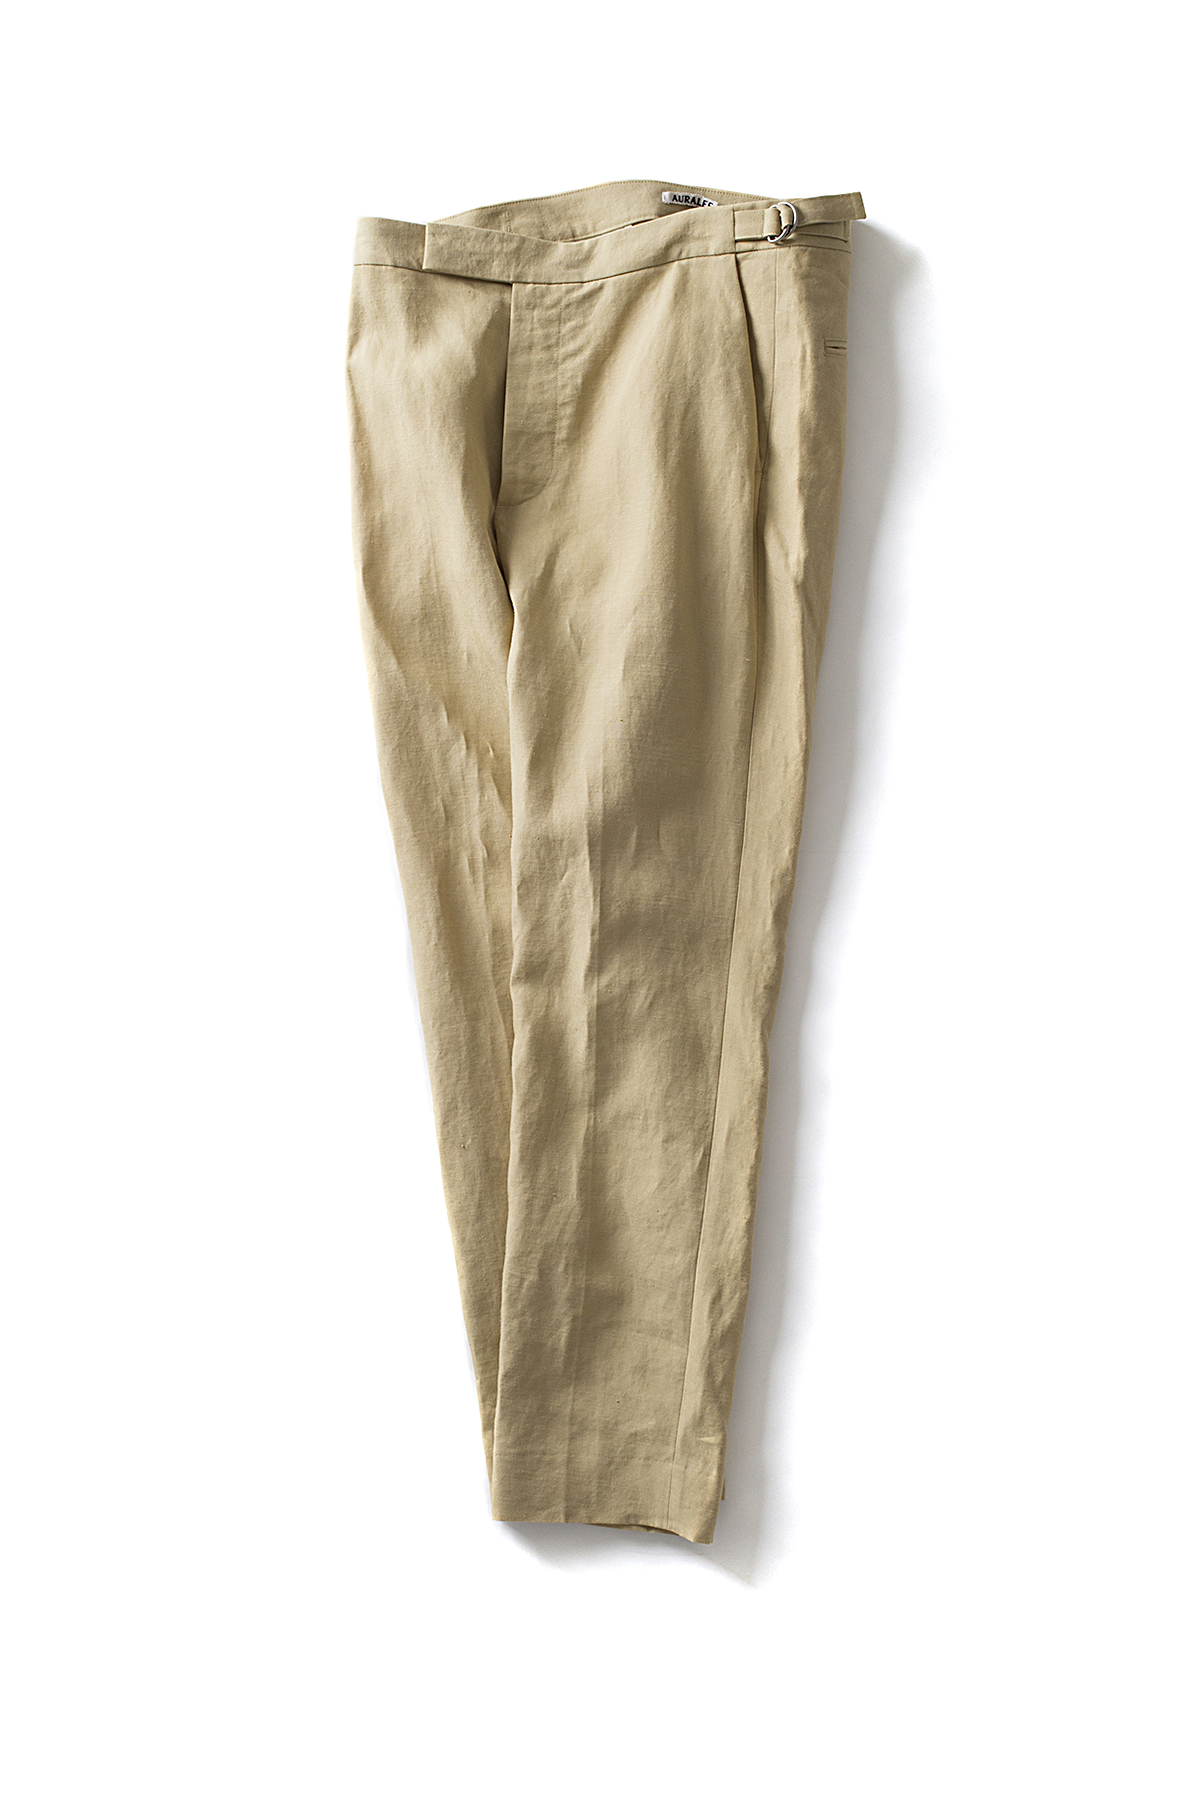 Auralee : Washed Linen Slacks (Yellow Beige)